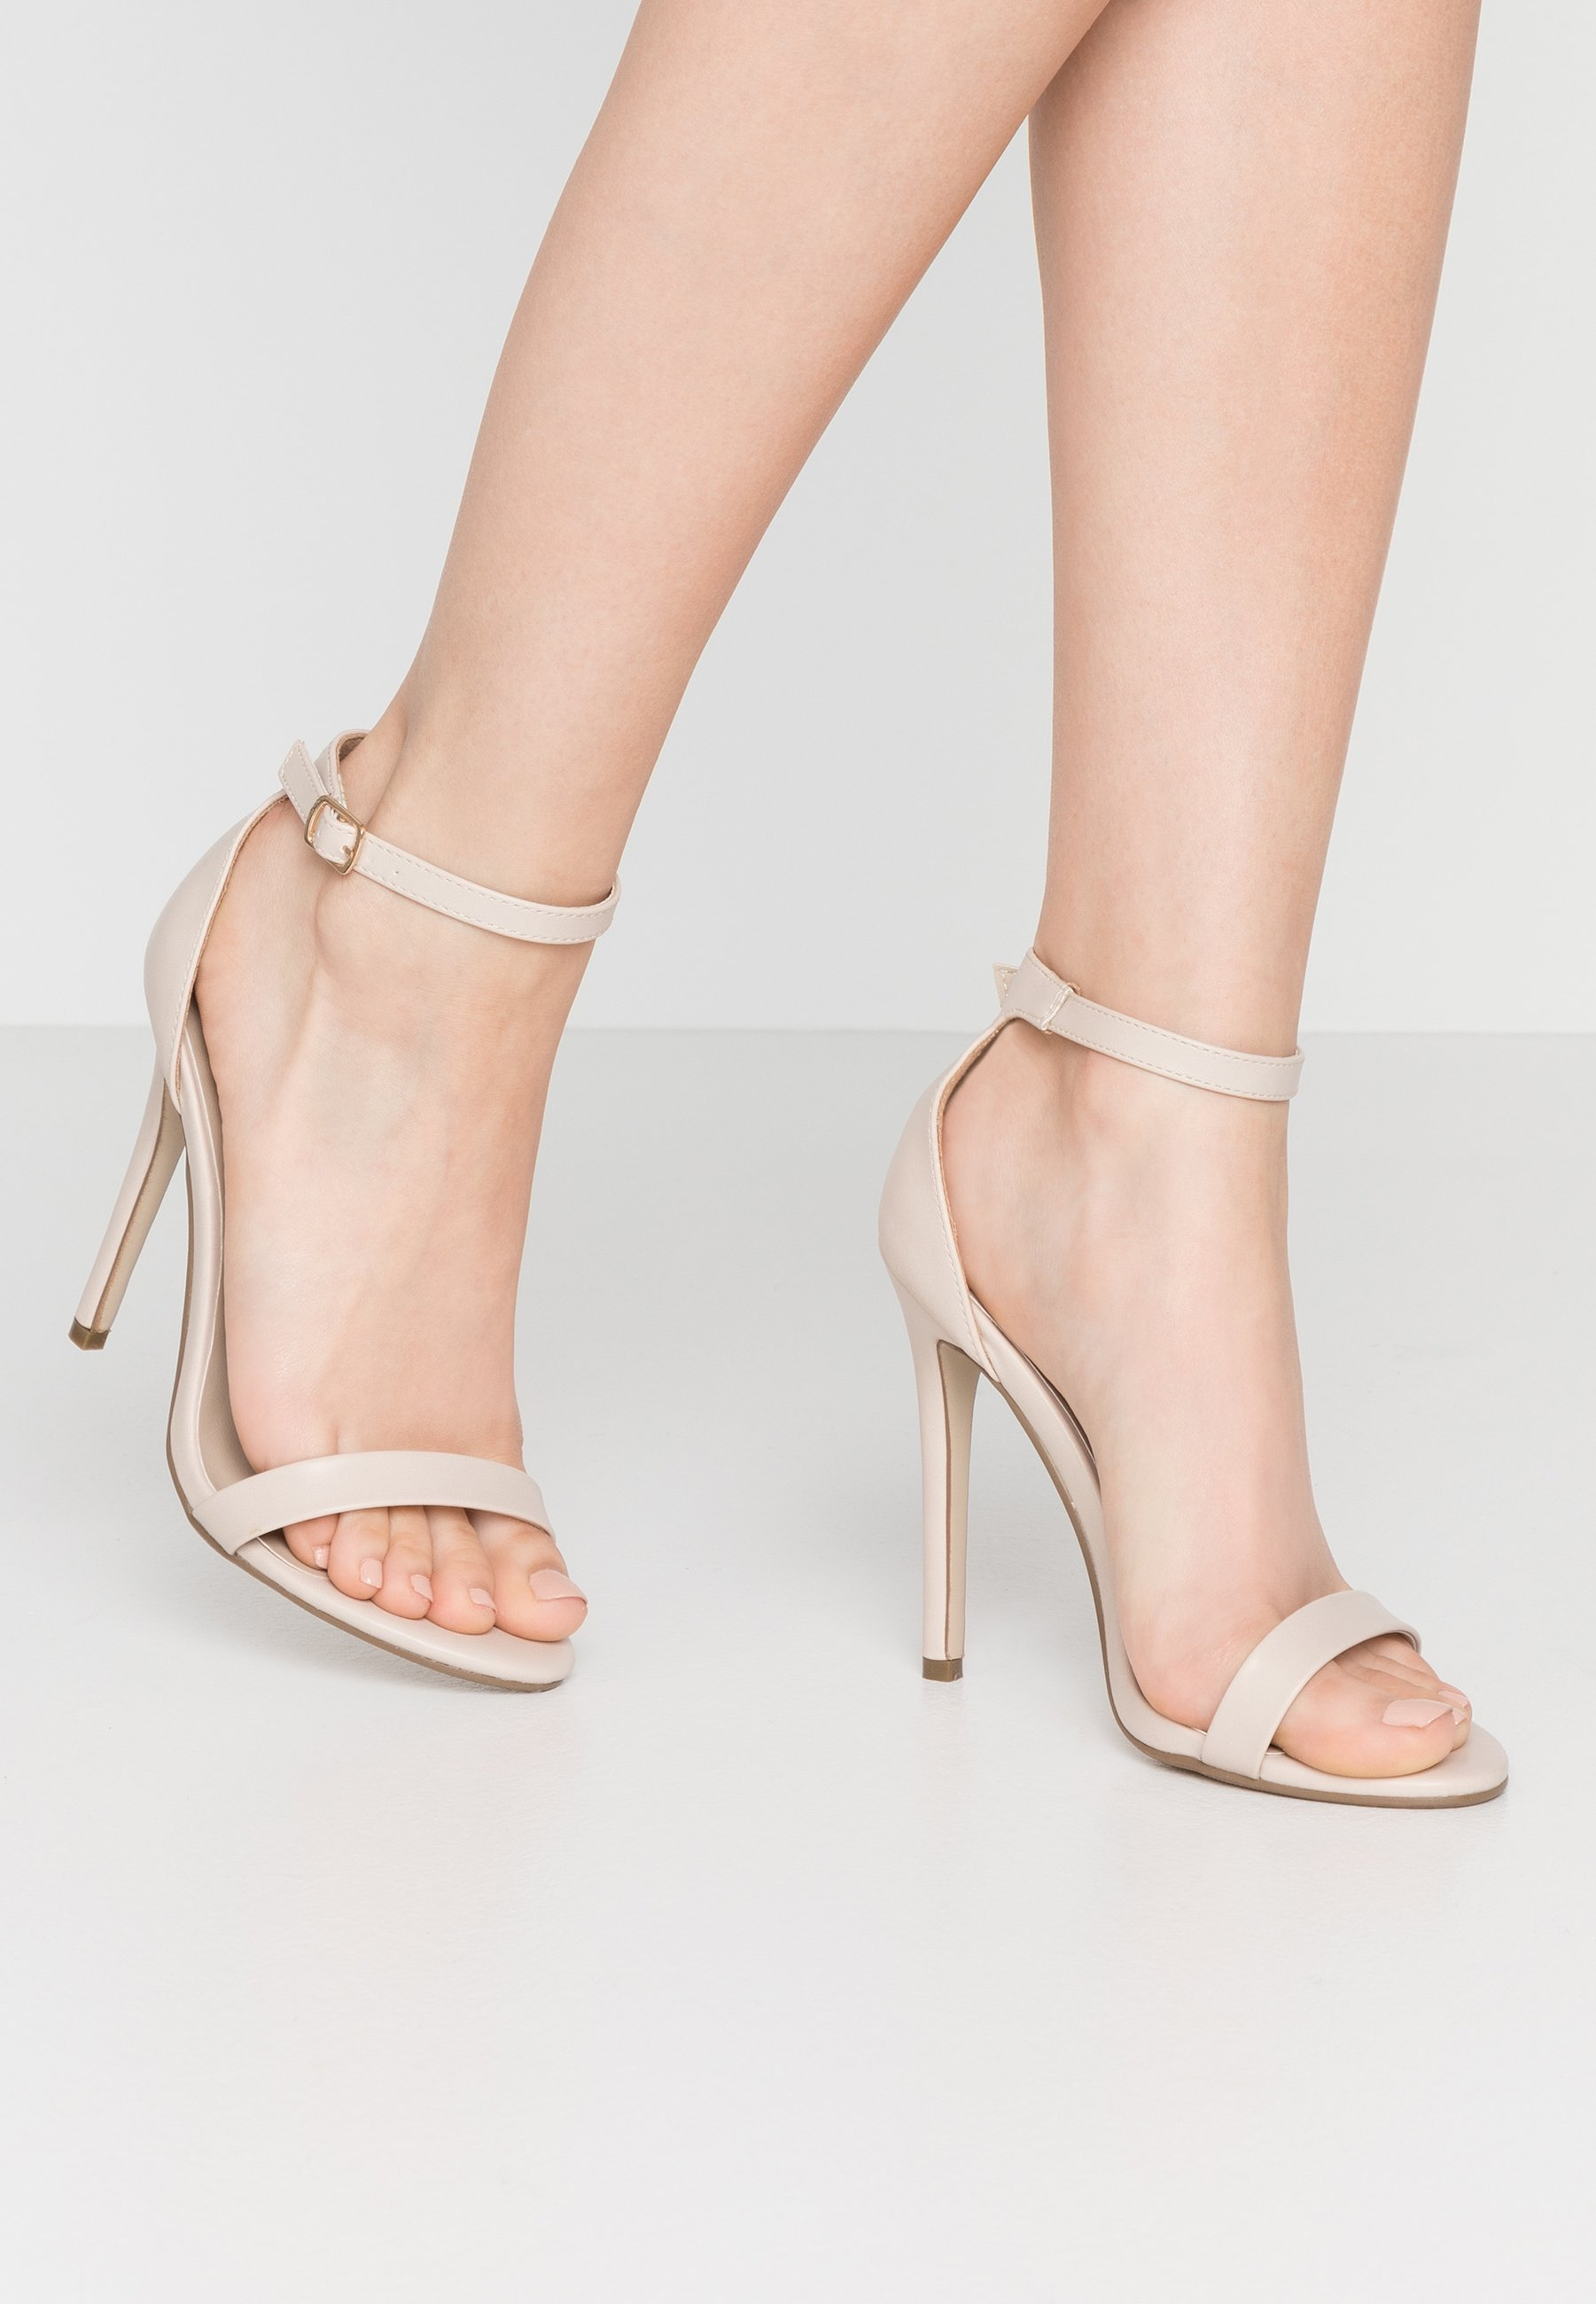 Femme BASIC BARELY THERE - Sandales à talons hauts